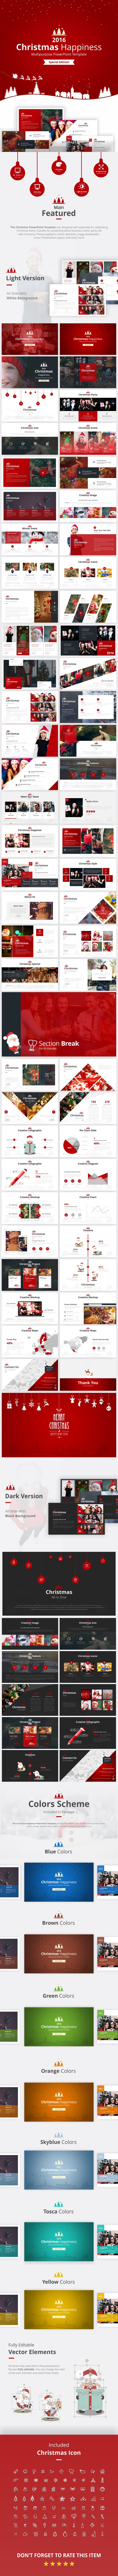 Christmas Happiness PowerPoint Template - Business PowerPoint Templates